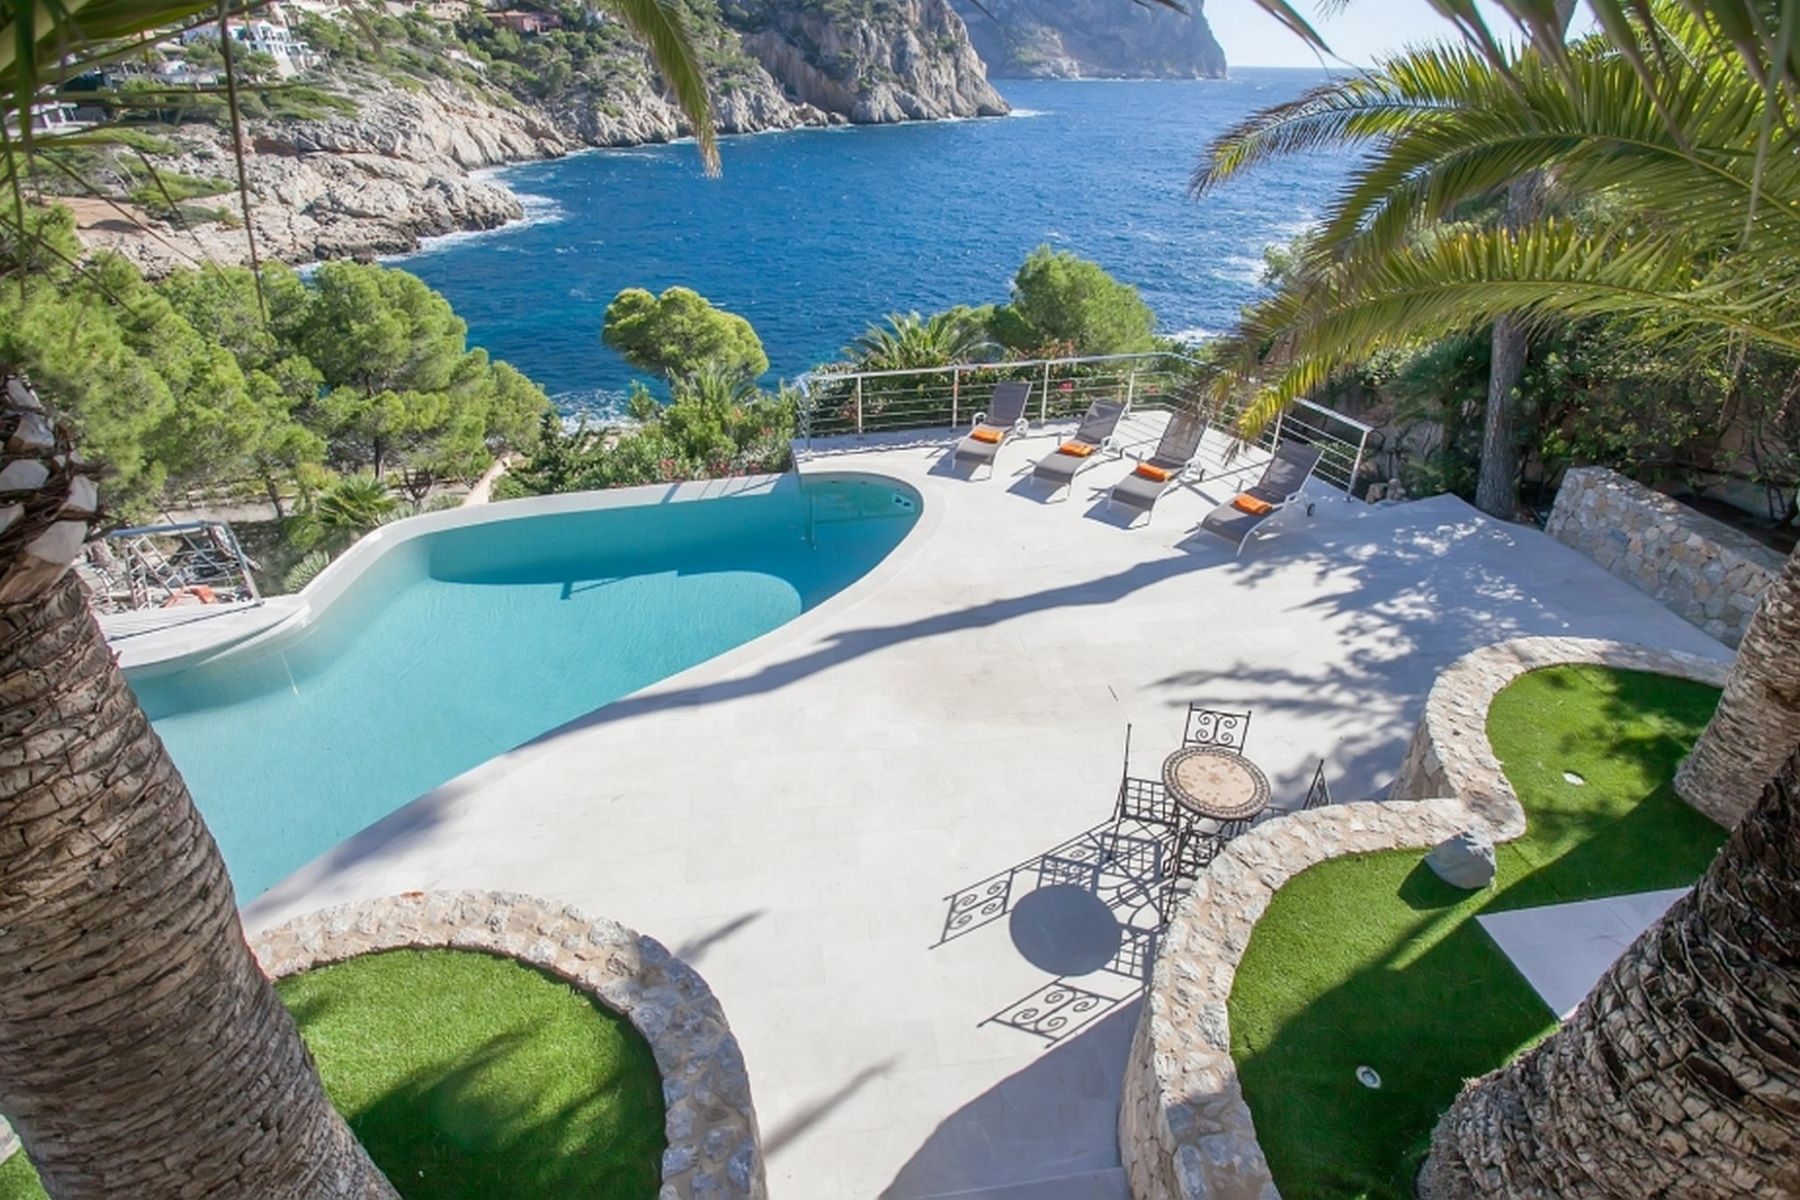 Other Residential for Sale at Unique sea line villa with boat house, sea access Andratx, Mallorca 07151 Spain